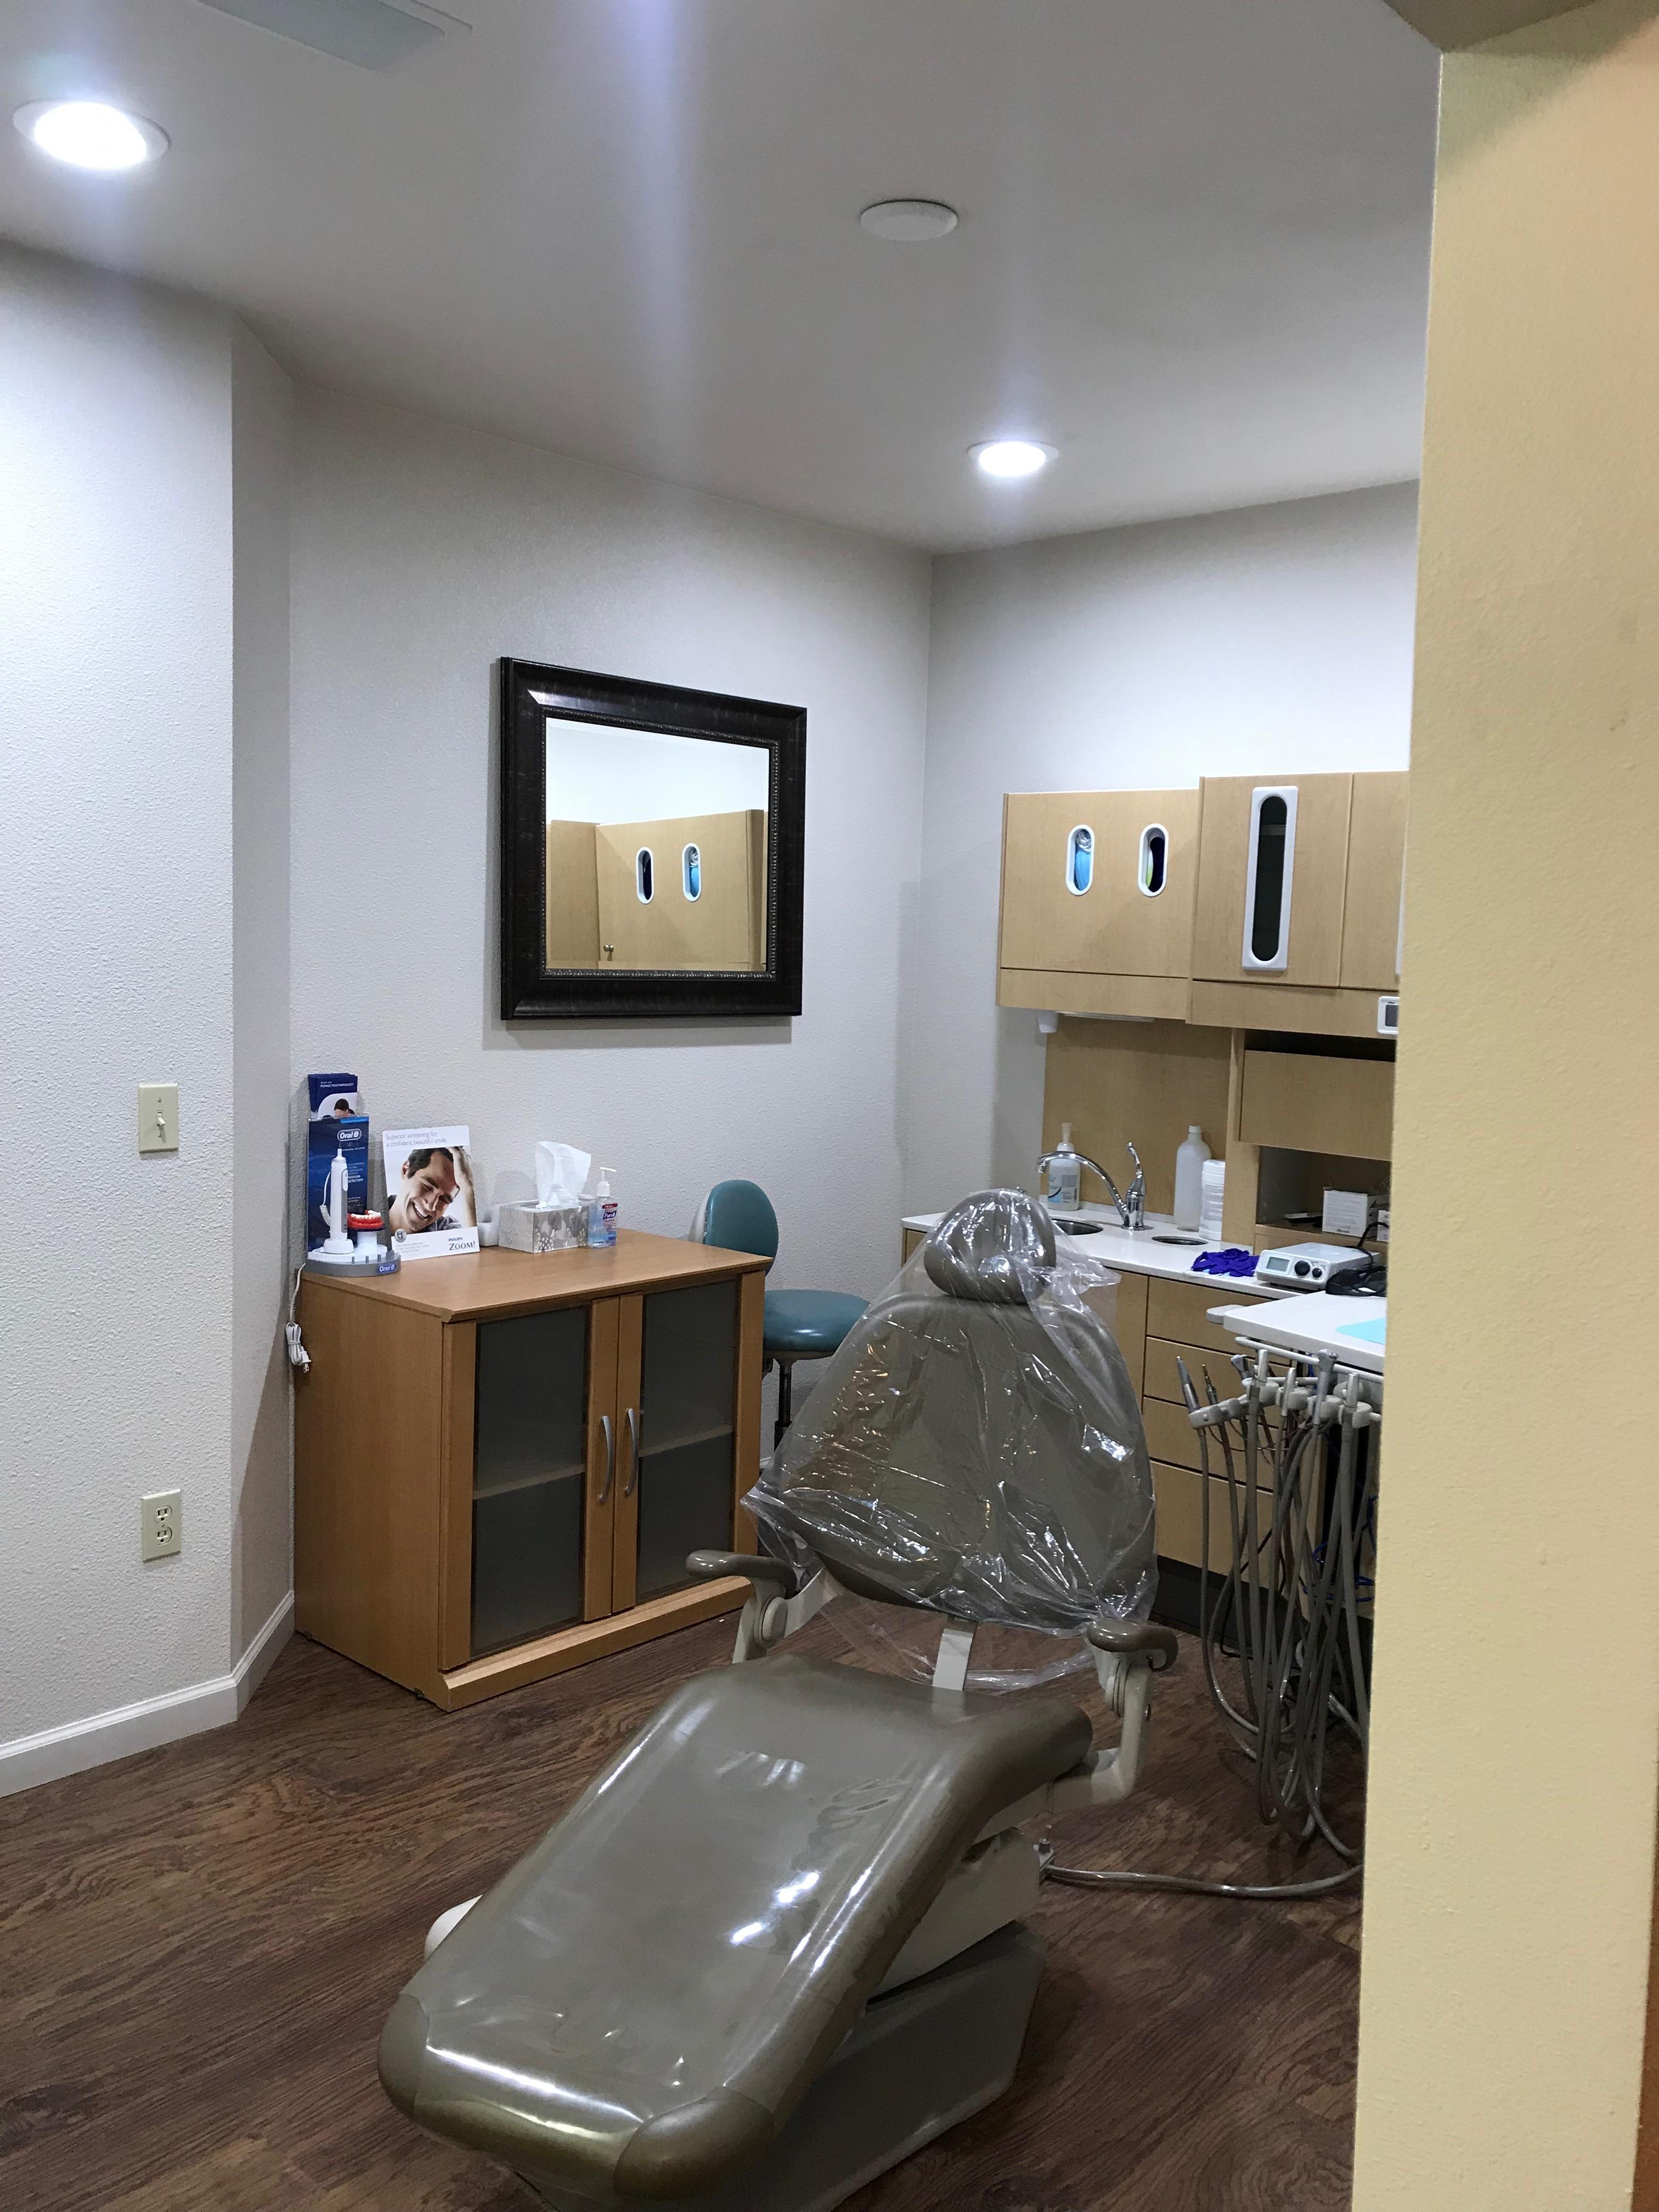 Mint Condition Dental - Colfax Dentist image 5